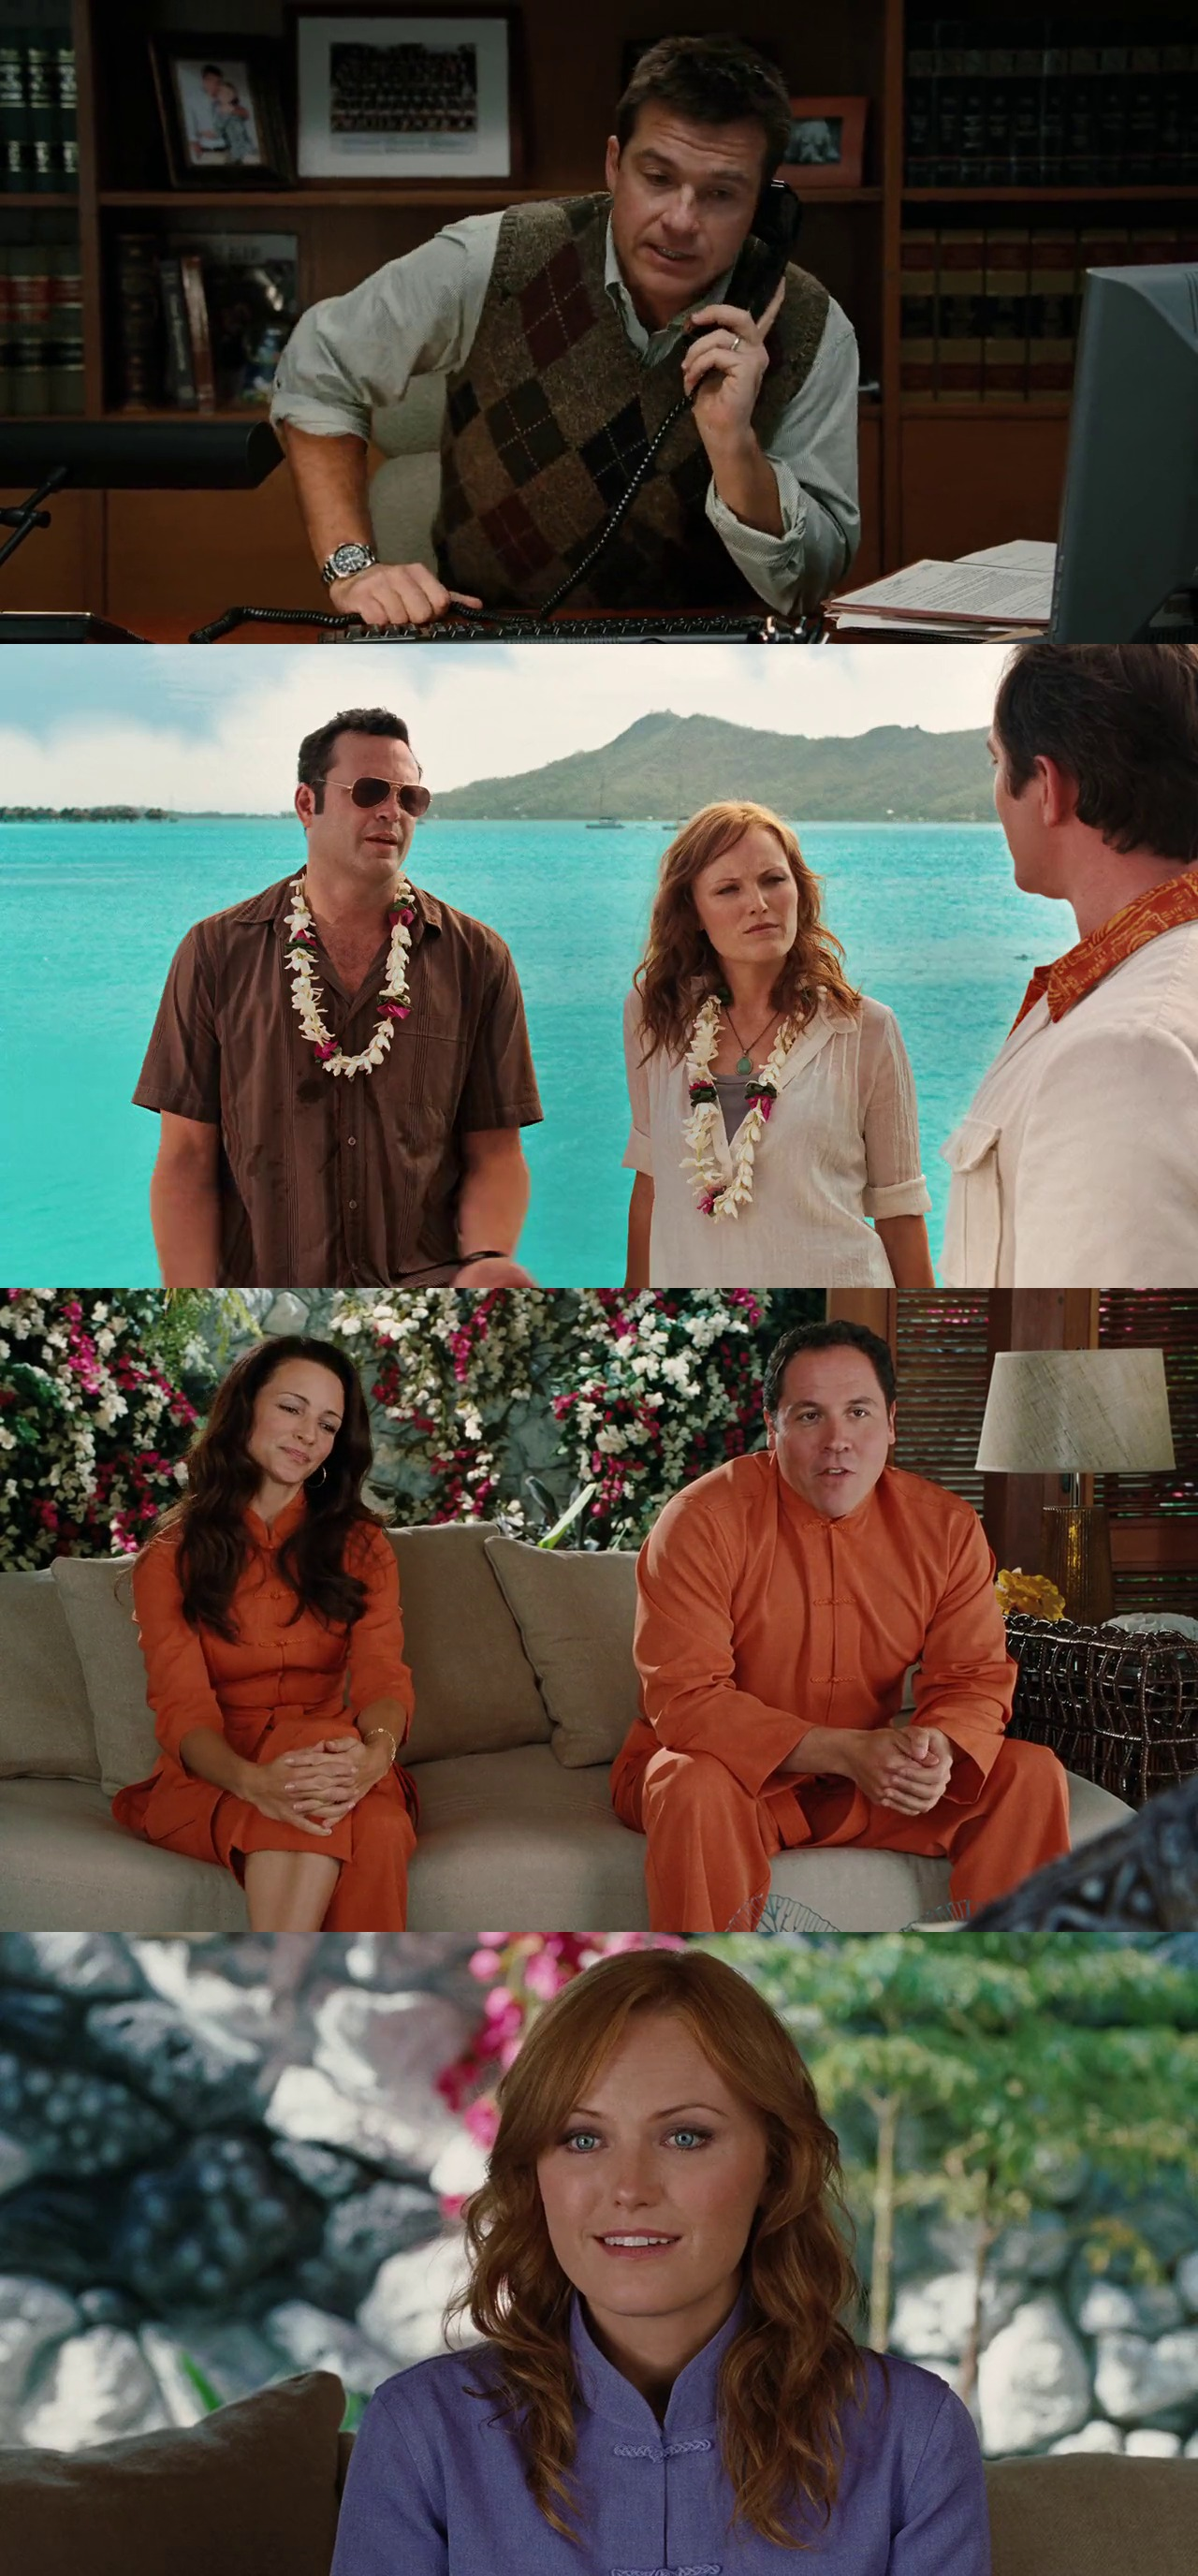 Couples Retreat 2009 Dual Audio Hindi English BluRay Full Movie Download HD